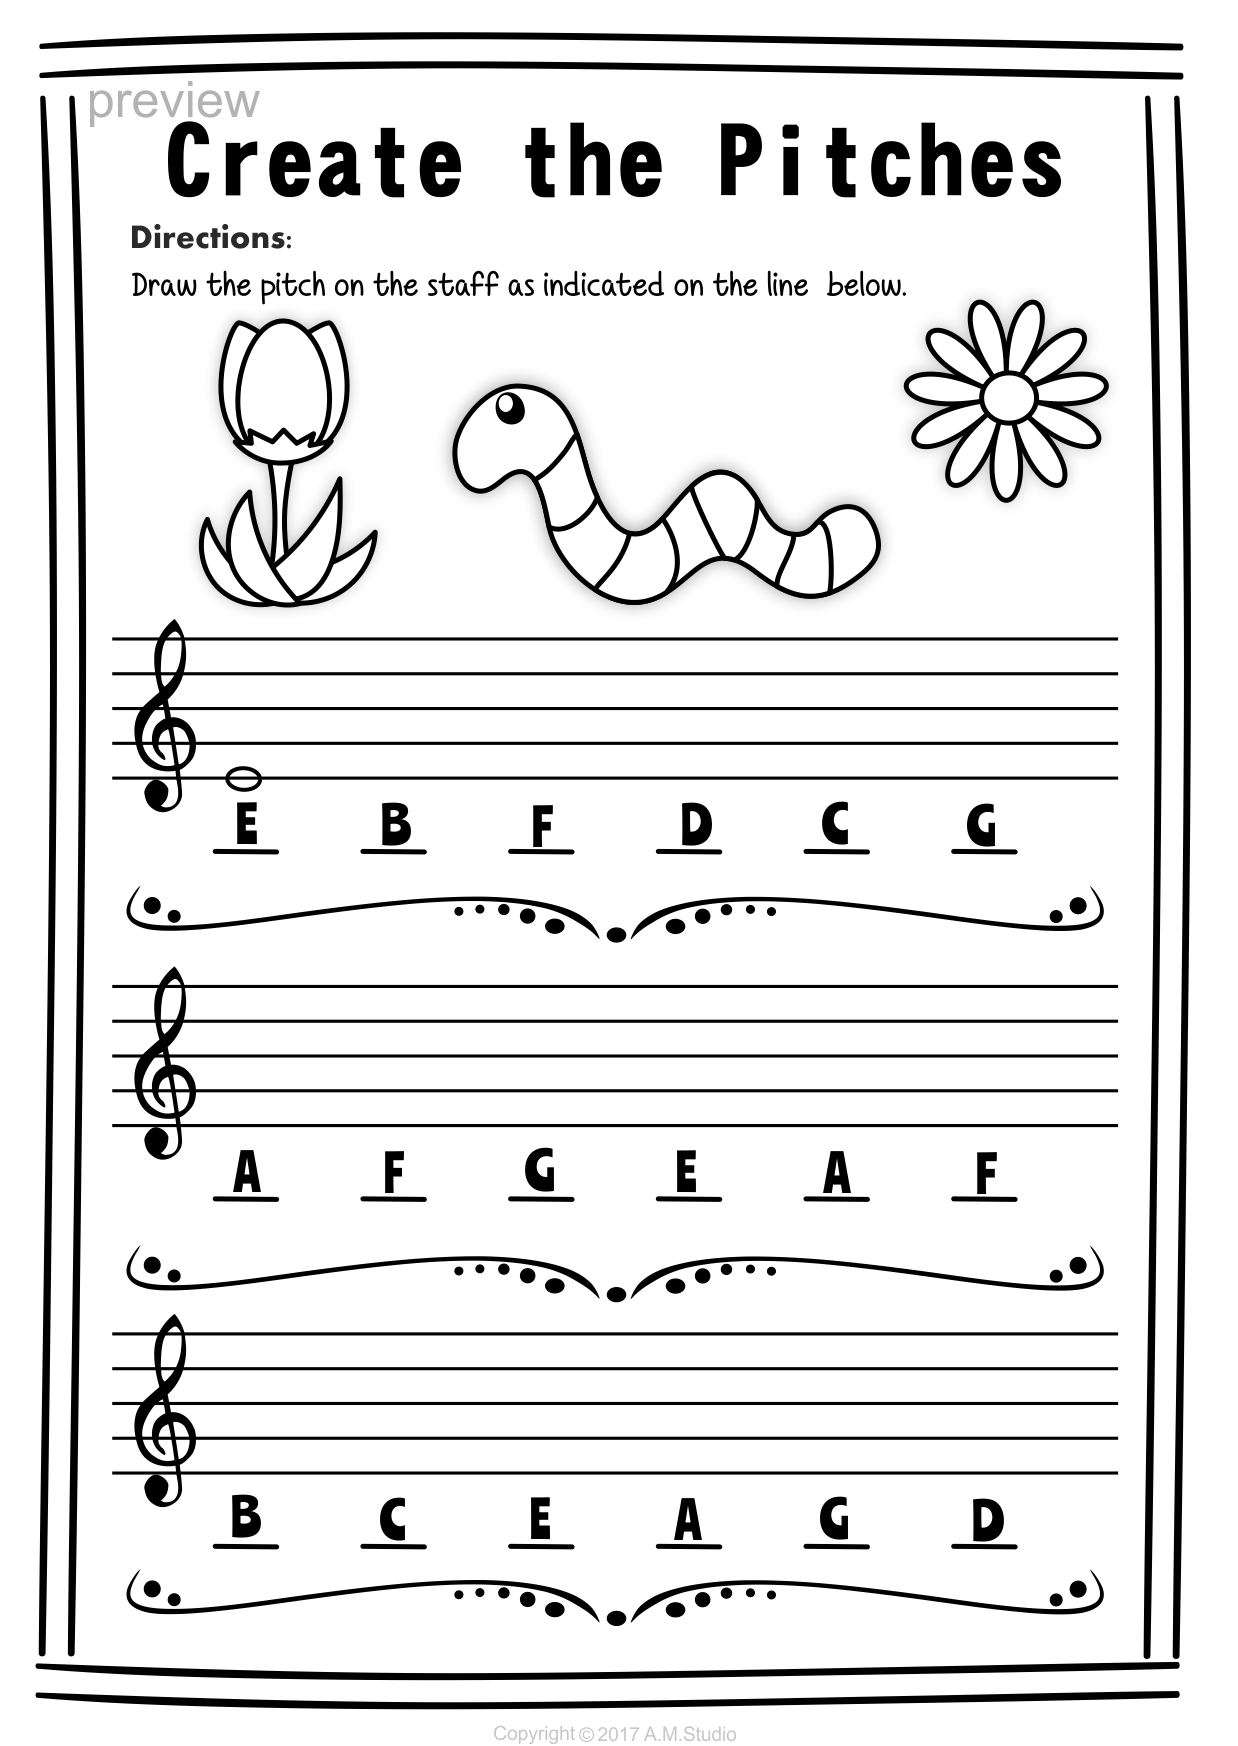 Worksheets Treble Clef Worksheets treble clef note naming worksheets for spring6 anastasiya spring